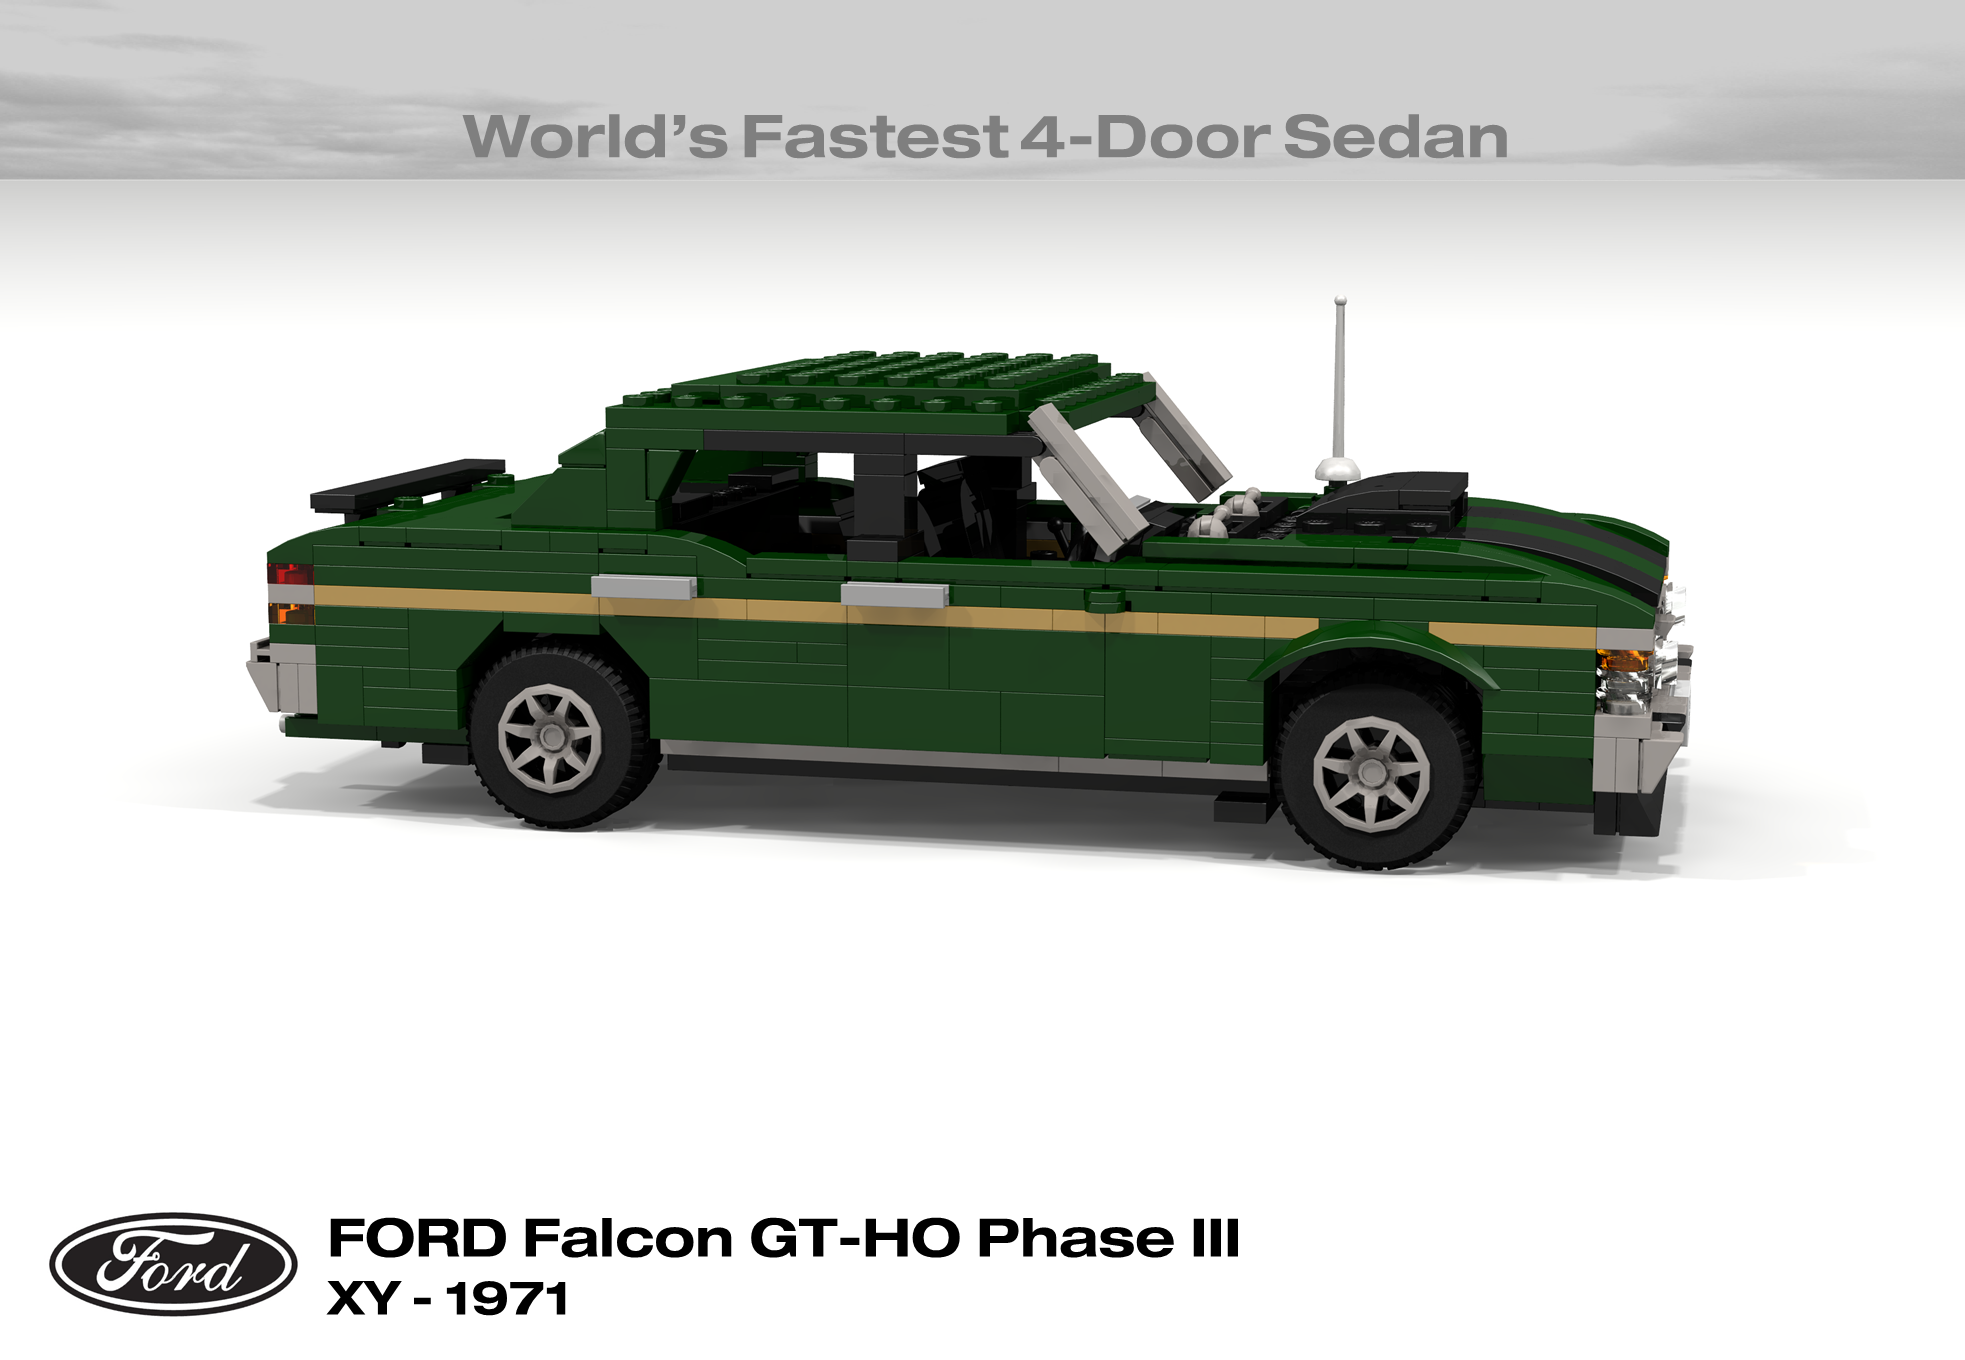 ford_falcon_xy_gt-ho_phase_iii_11.png